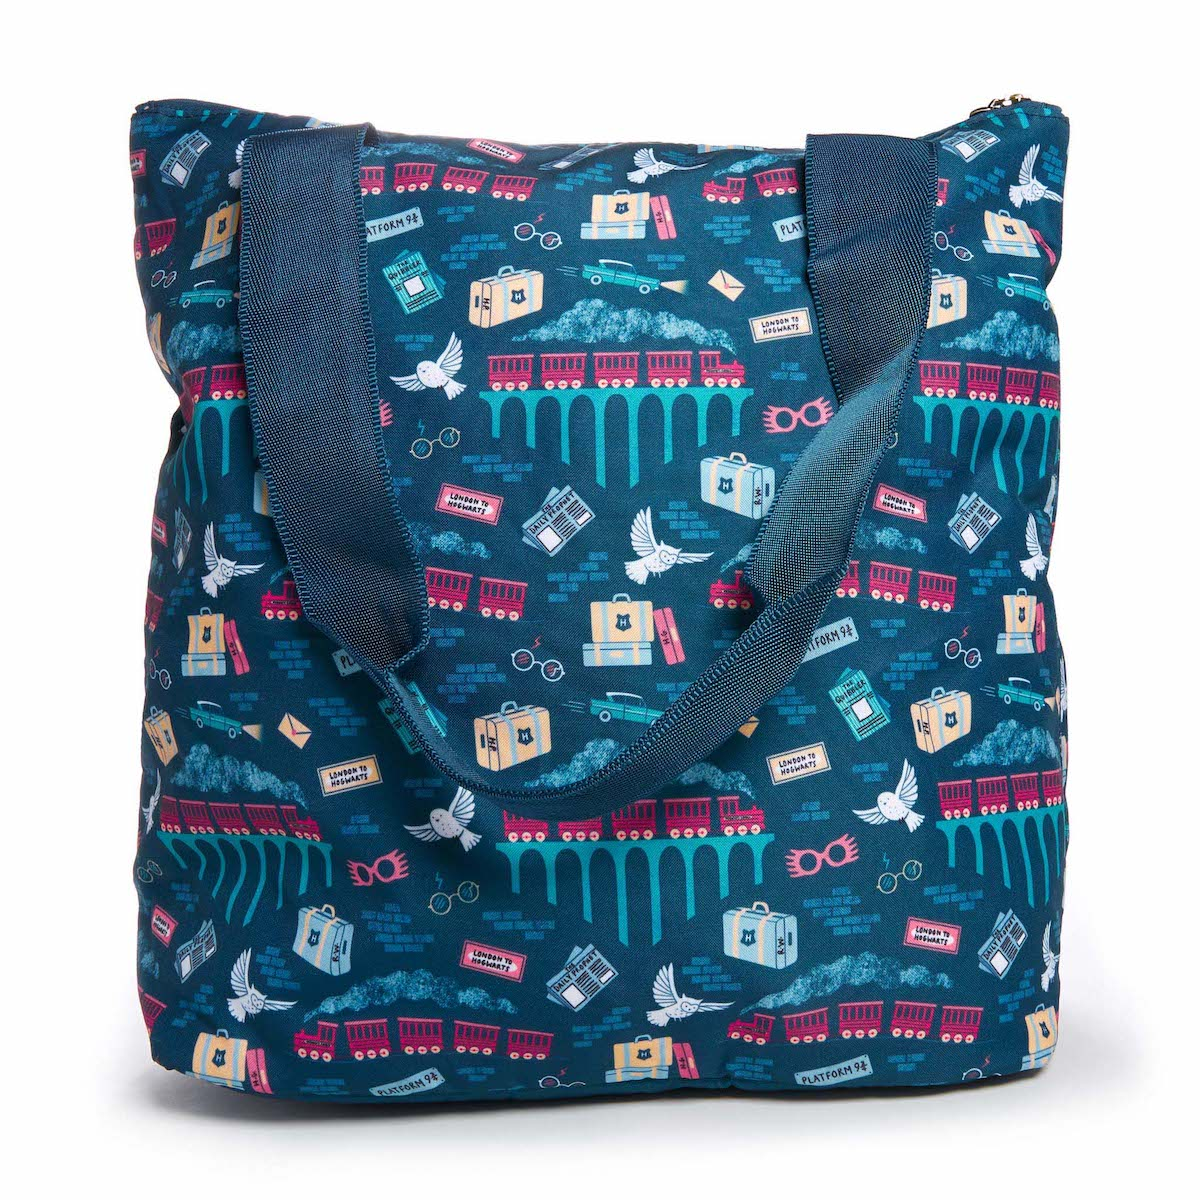 The All That Tote features a block color panel and is made from germ-resistant fabric.